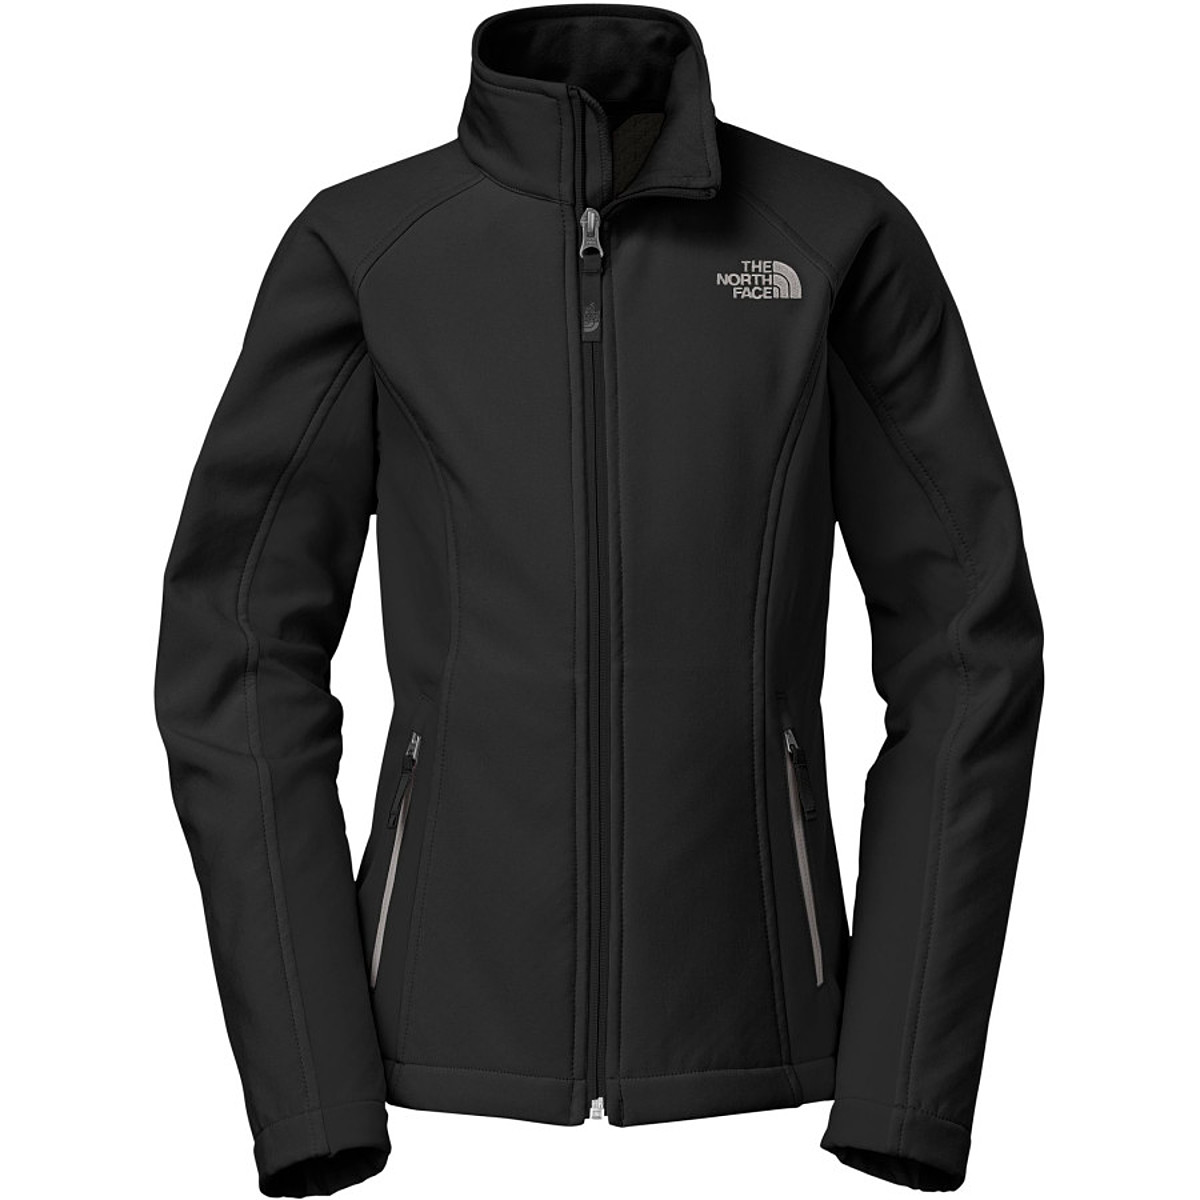 The North Face Shellrock Jacket